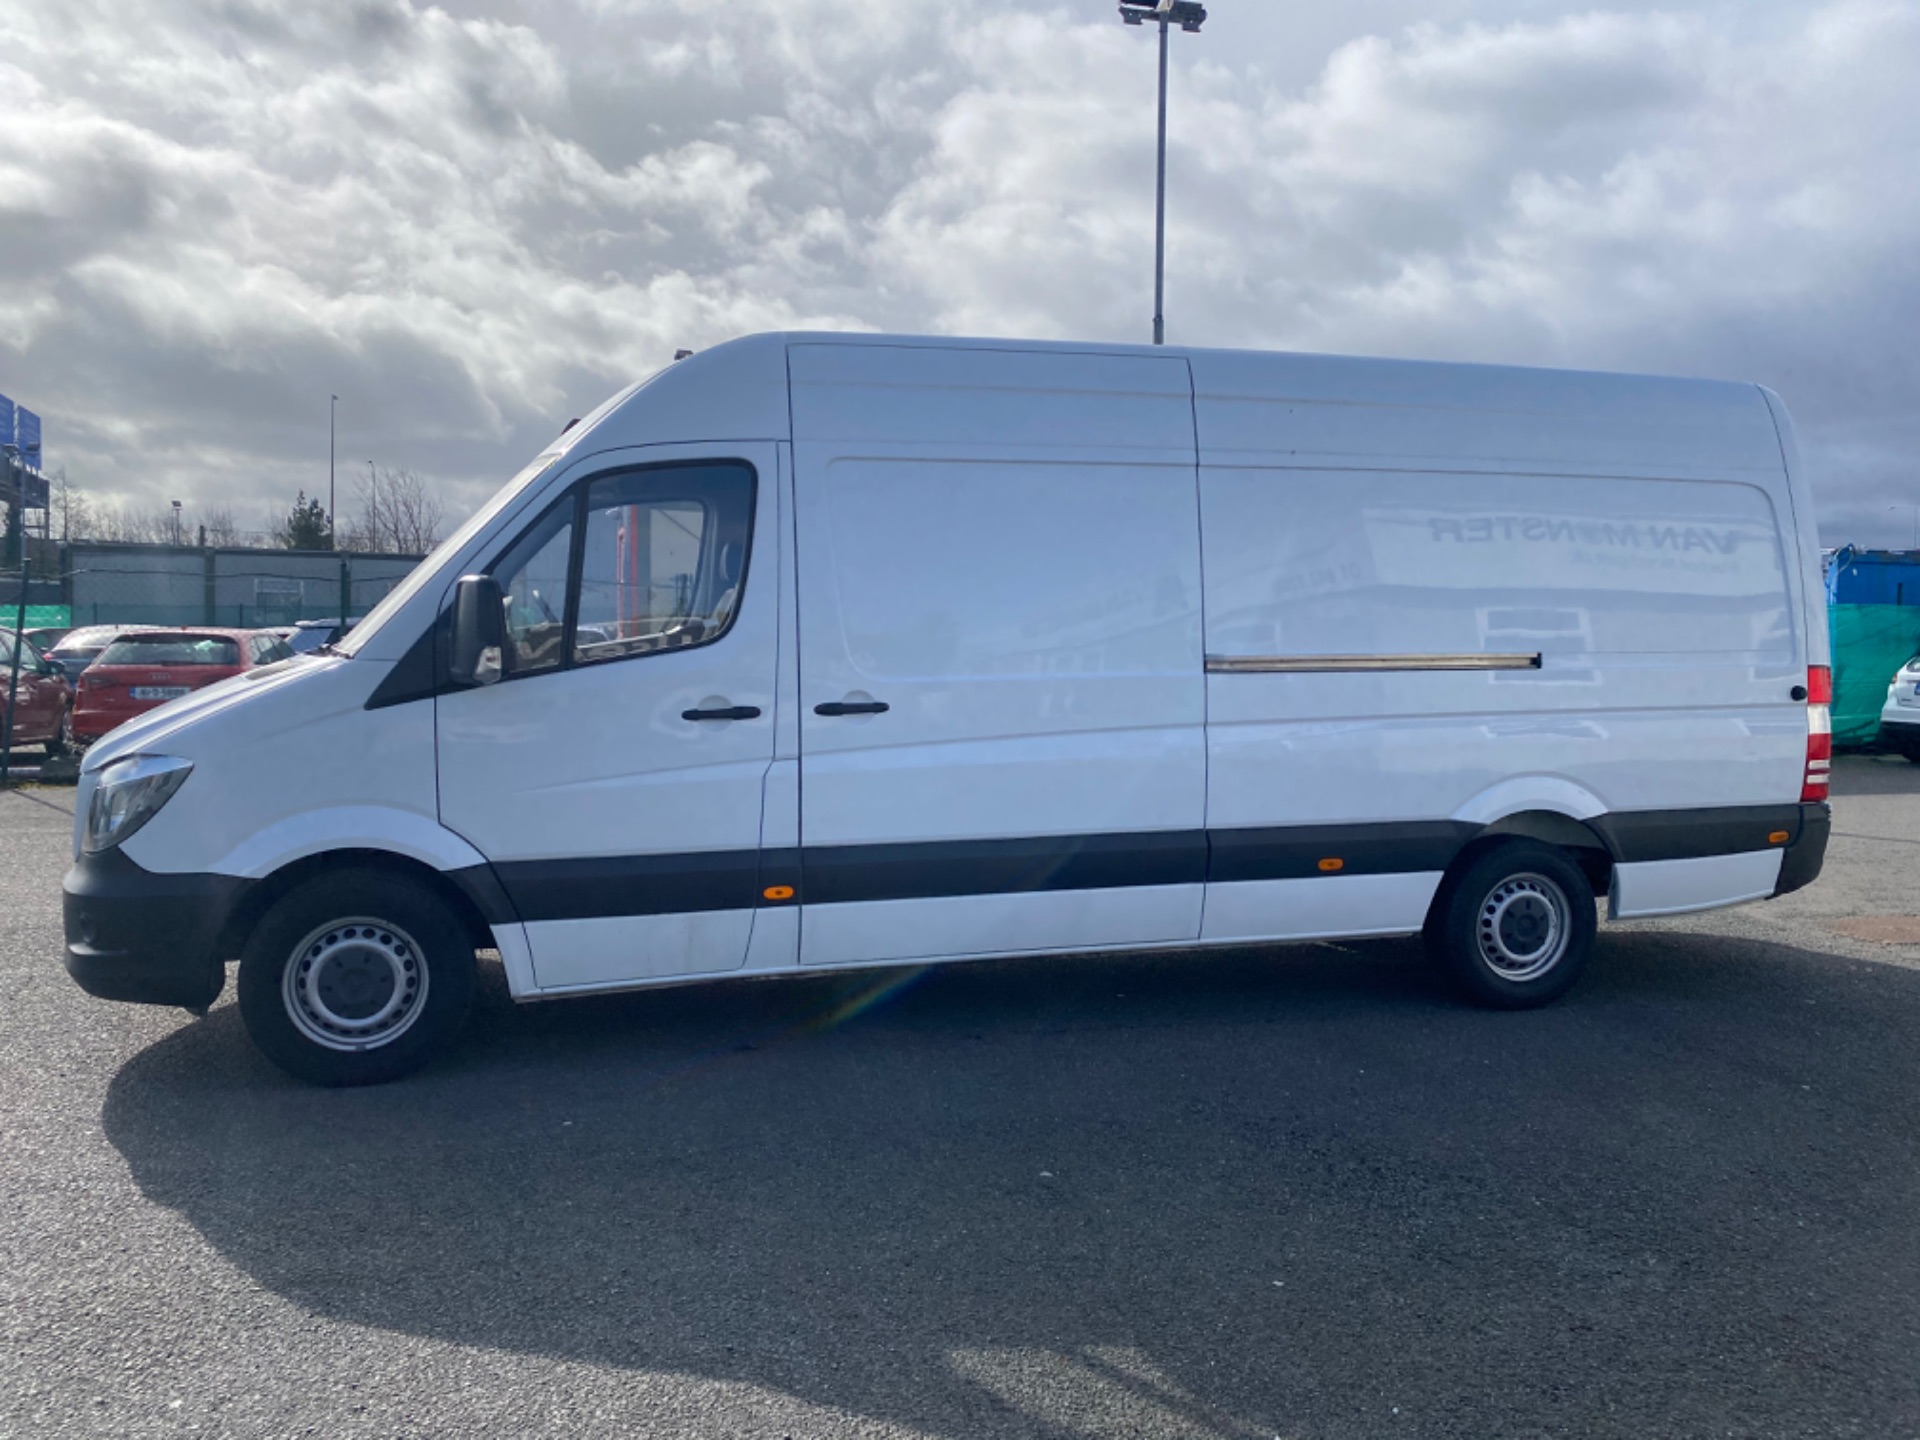 2017 Mercedes-Benz Sprinter 314/43 EU6 6DR (172D20173) Thumbnail 3